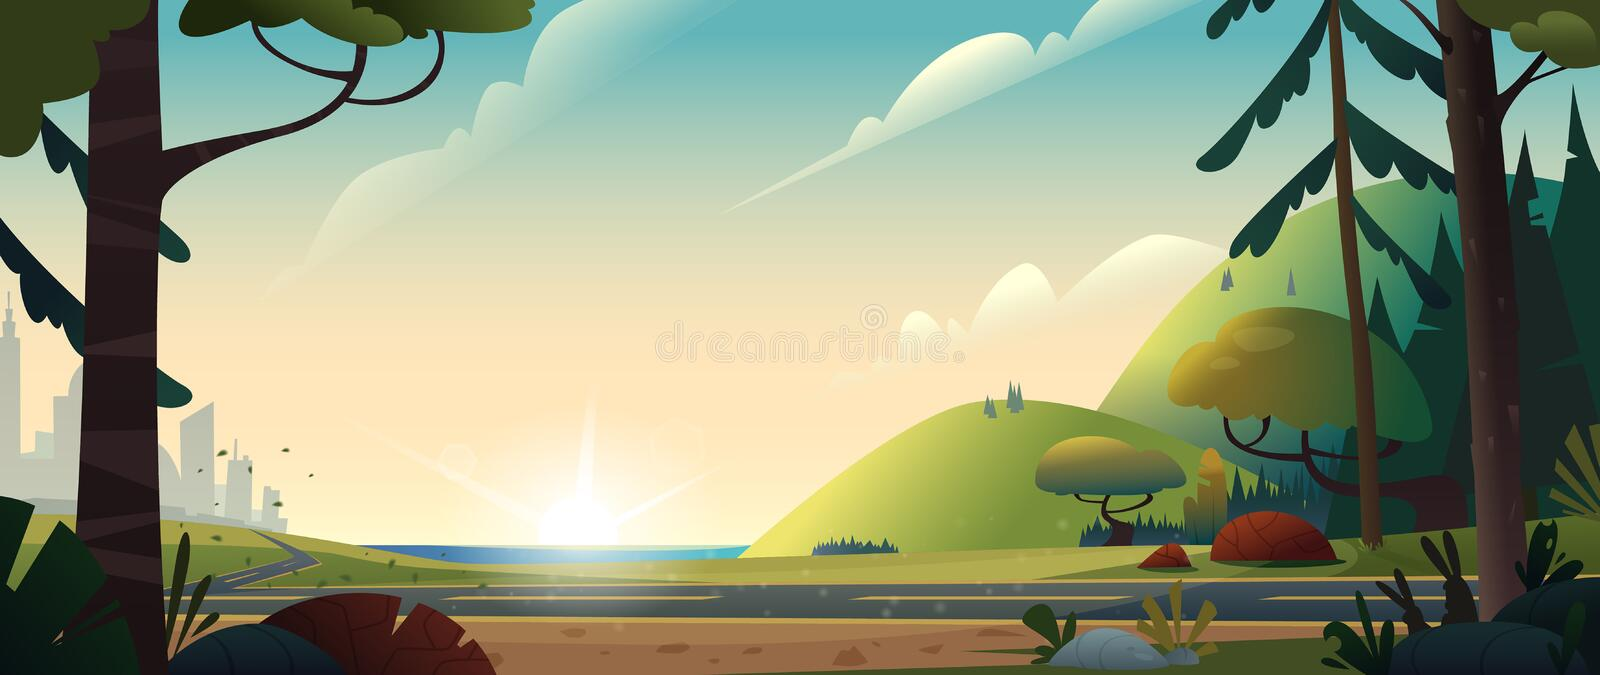 Summer landscape. The road from the city to the forest or countryside. Cinematic view. Cartoon style vector illustration. royalty free illustration